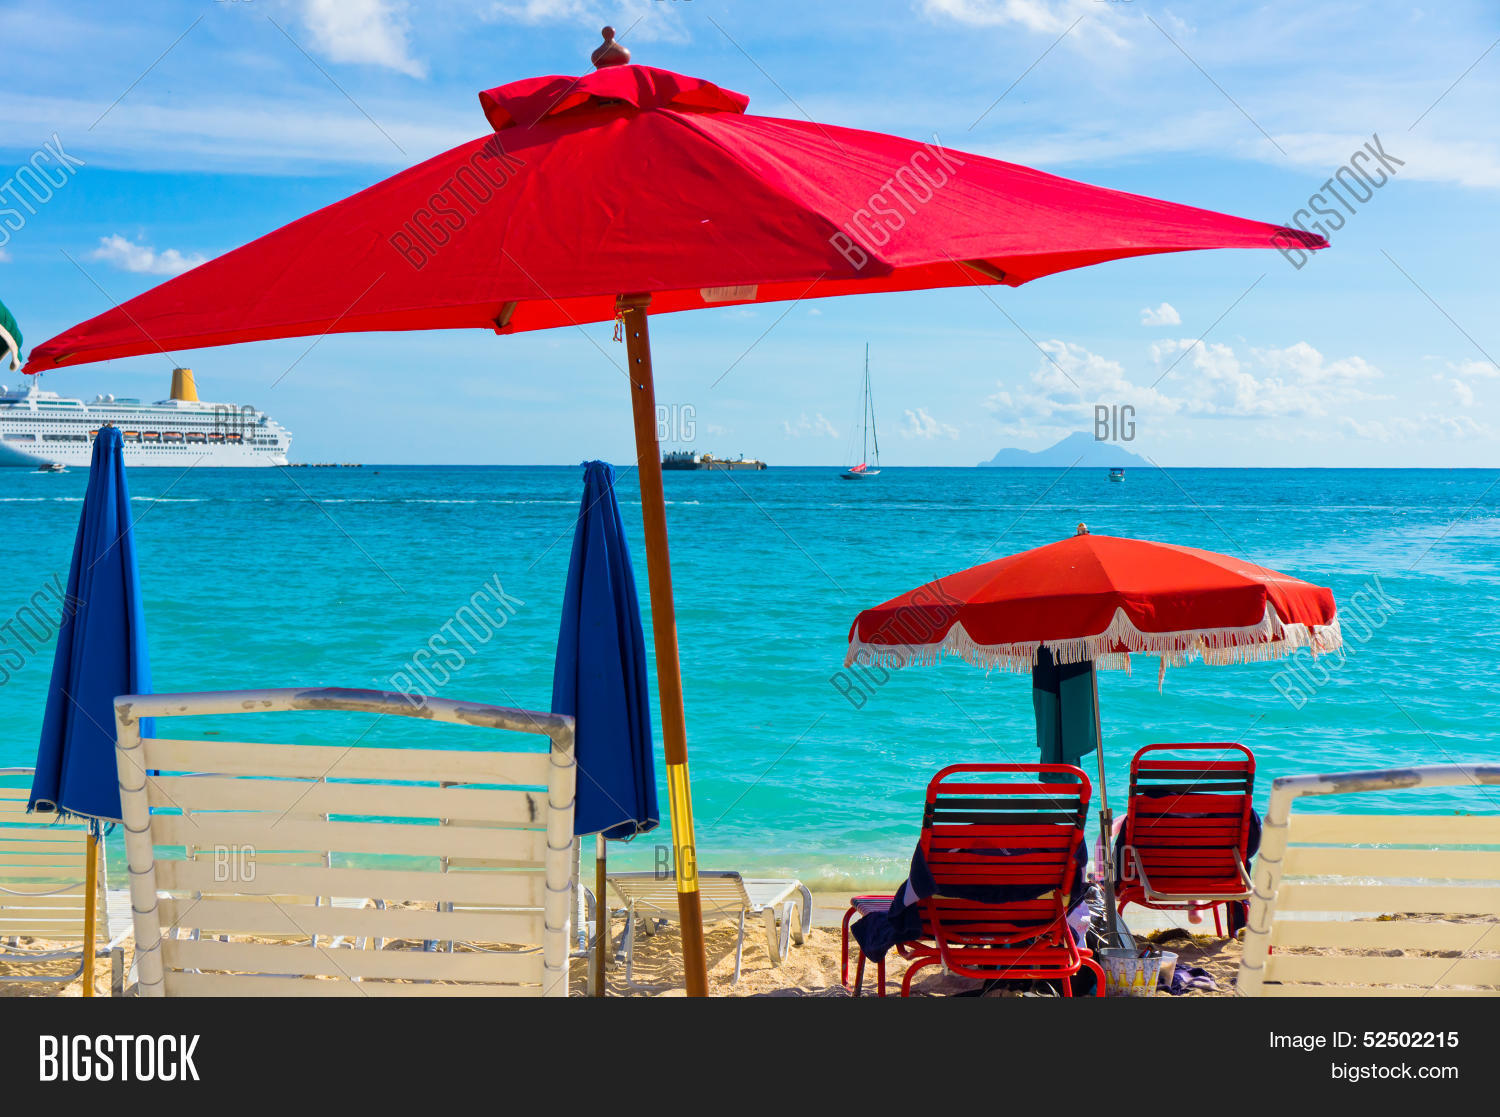 saint martin big and beautiful singles We ranked the top 12 hotels in st martin - st maarten based on an unbiased analysis of awards, expert recommendations, and user ratings.